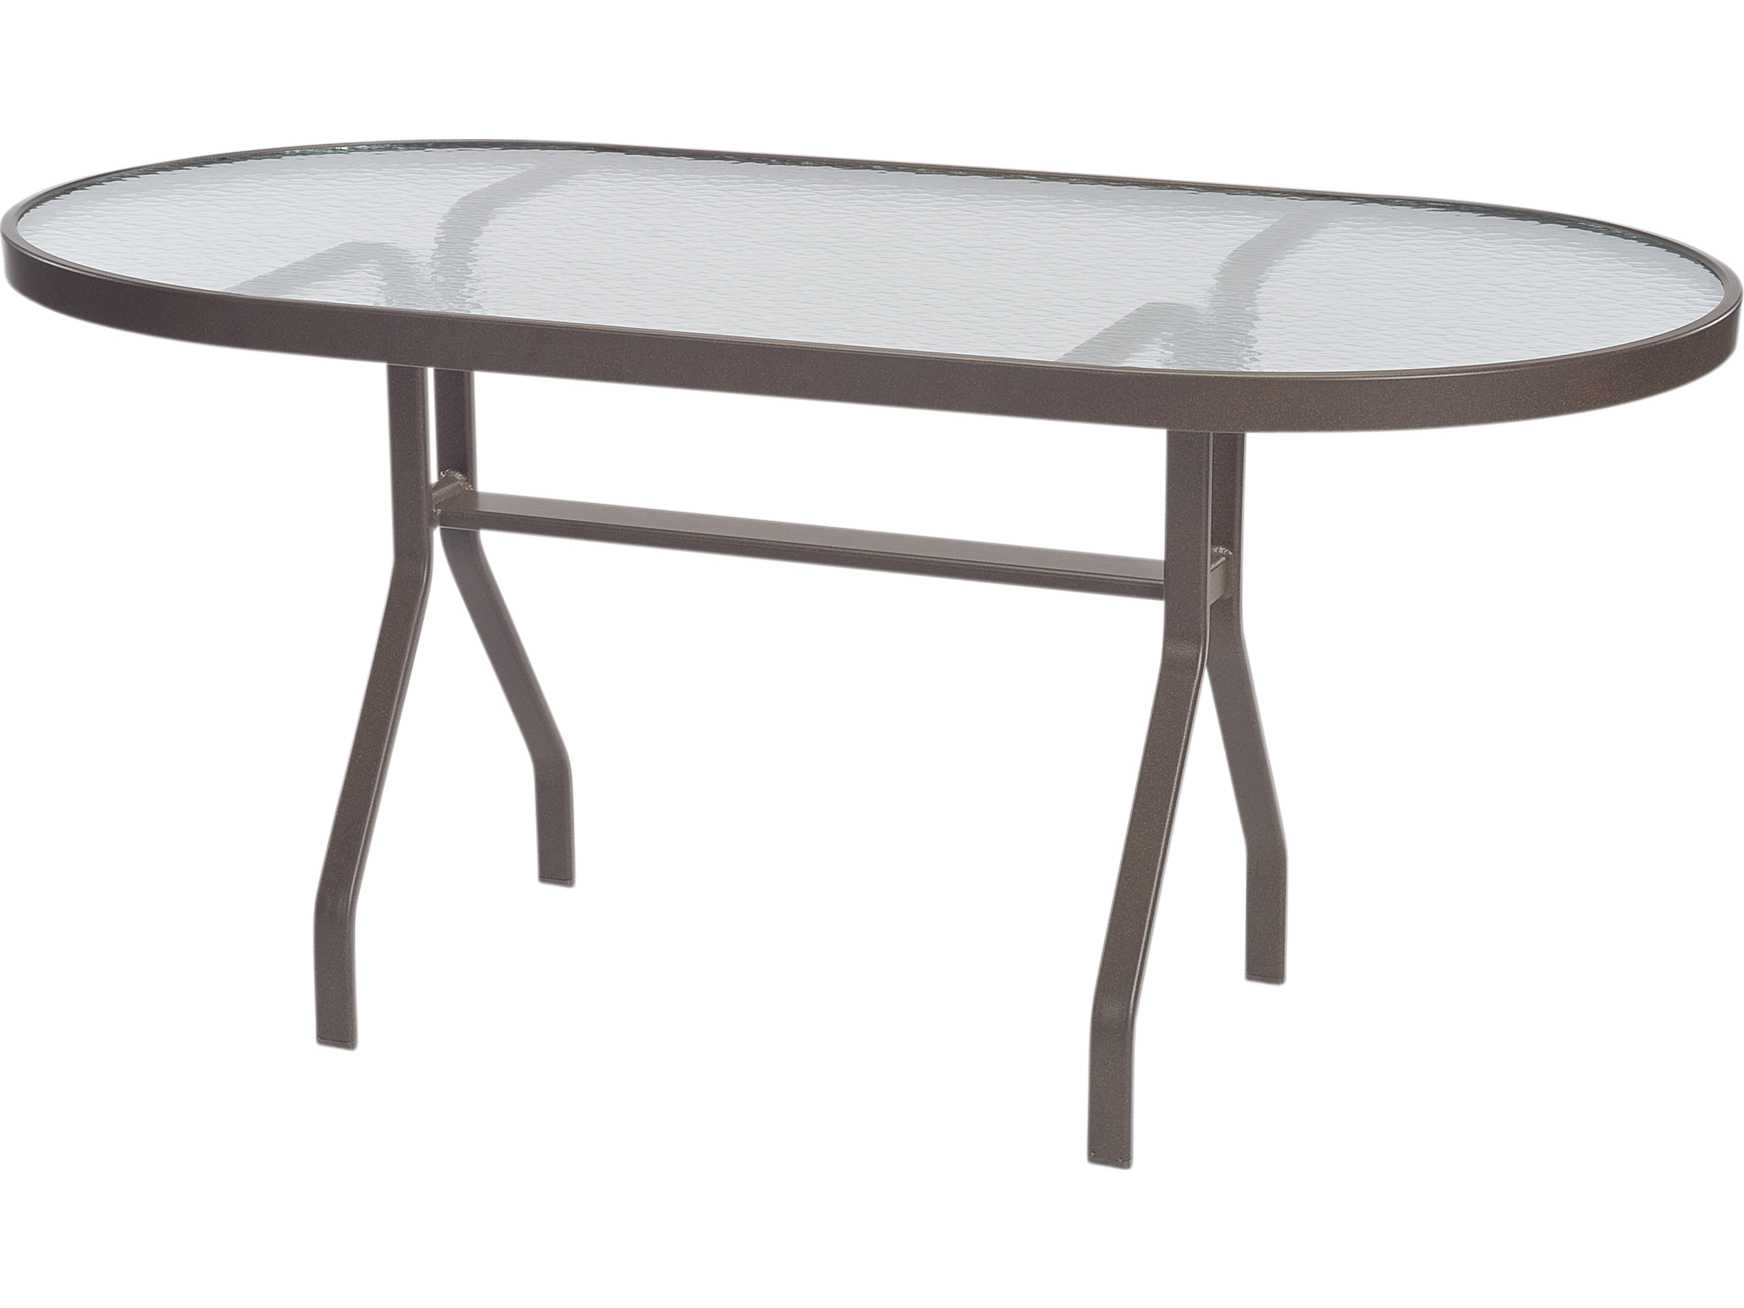 Windward Design Group Glass Top Aluminum 60 X 30 Oval Dining Table Wt3060 18g